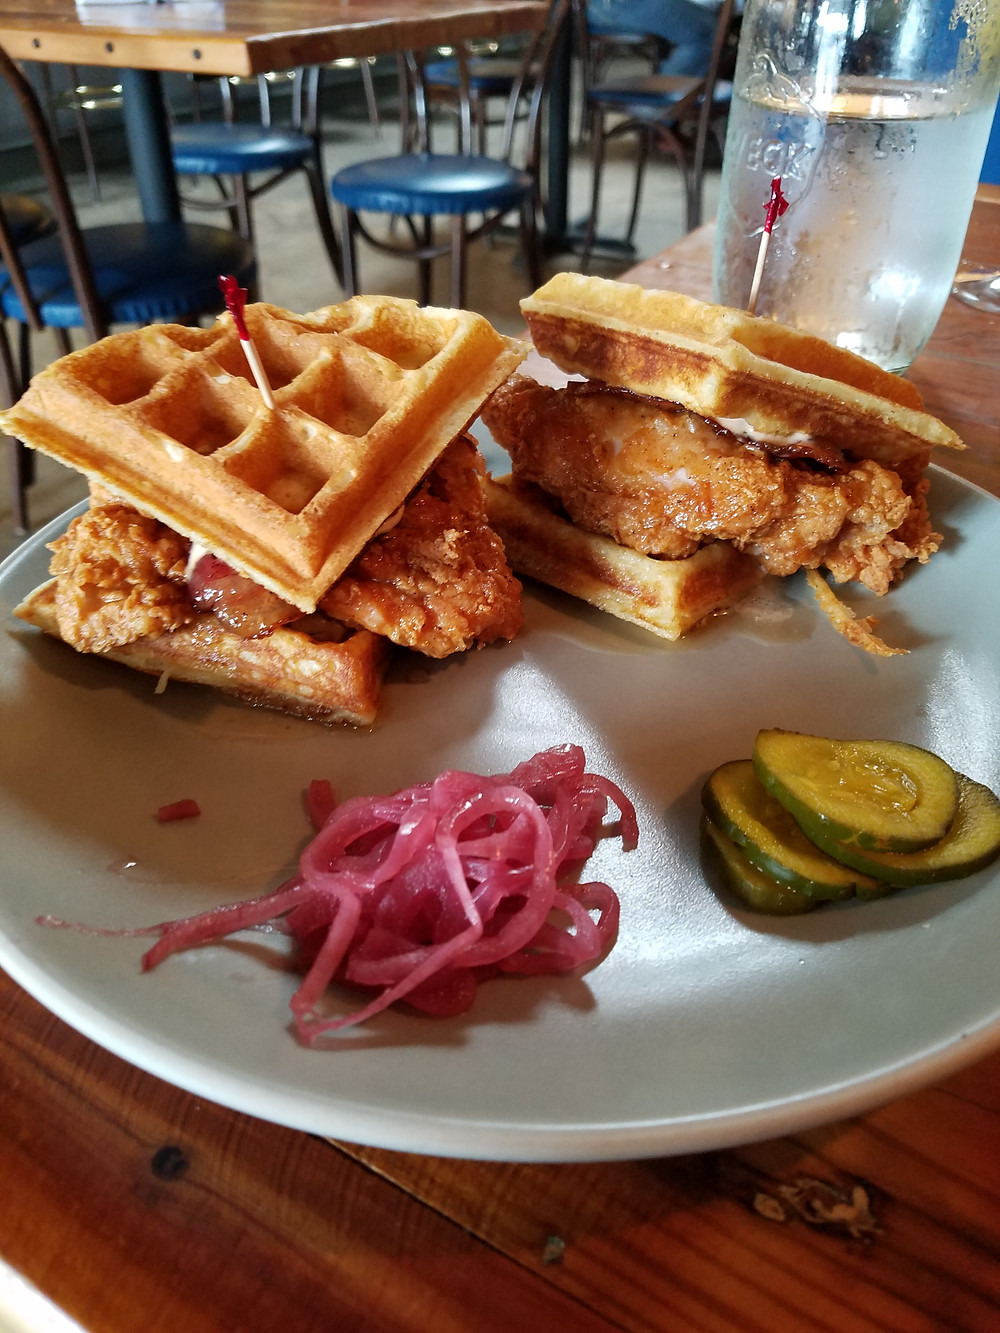 Chicken & Waffles. Yes please.